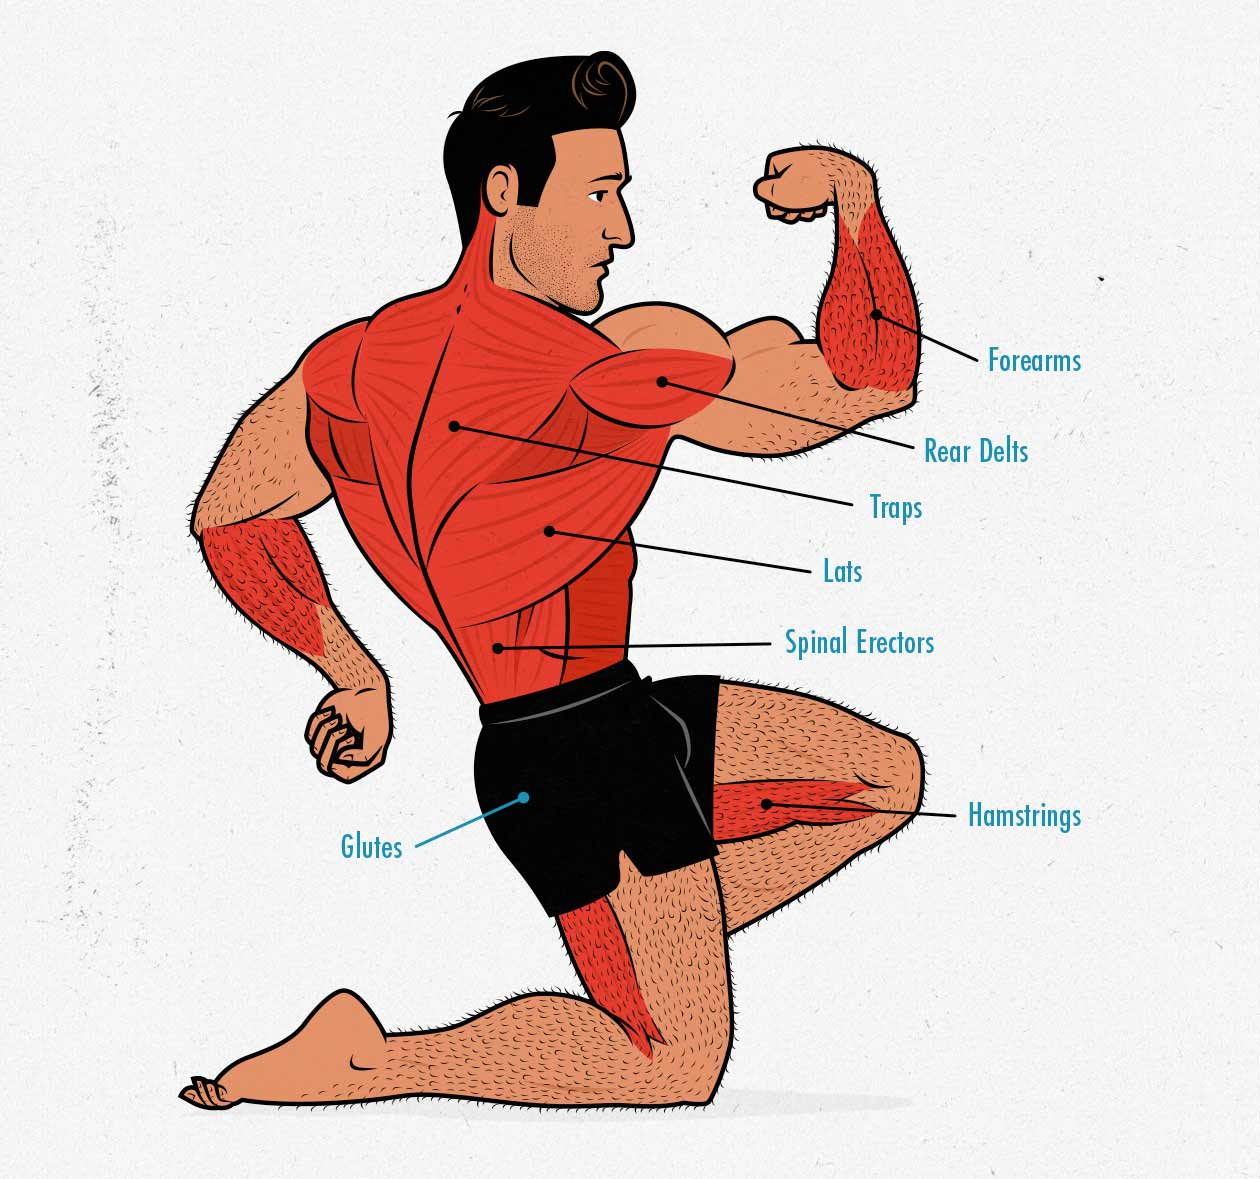 Diagram showing the muscles worked by the deadlift.